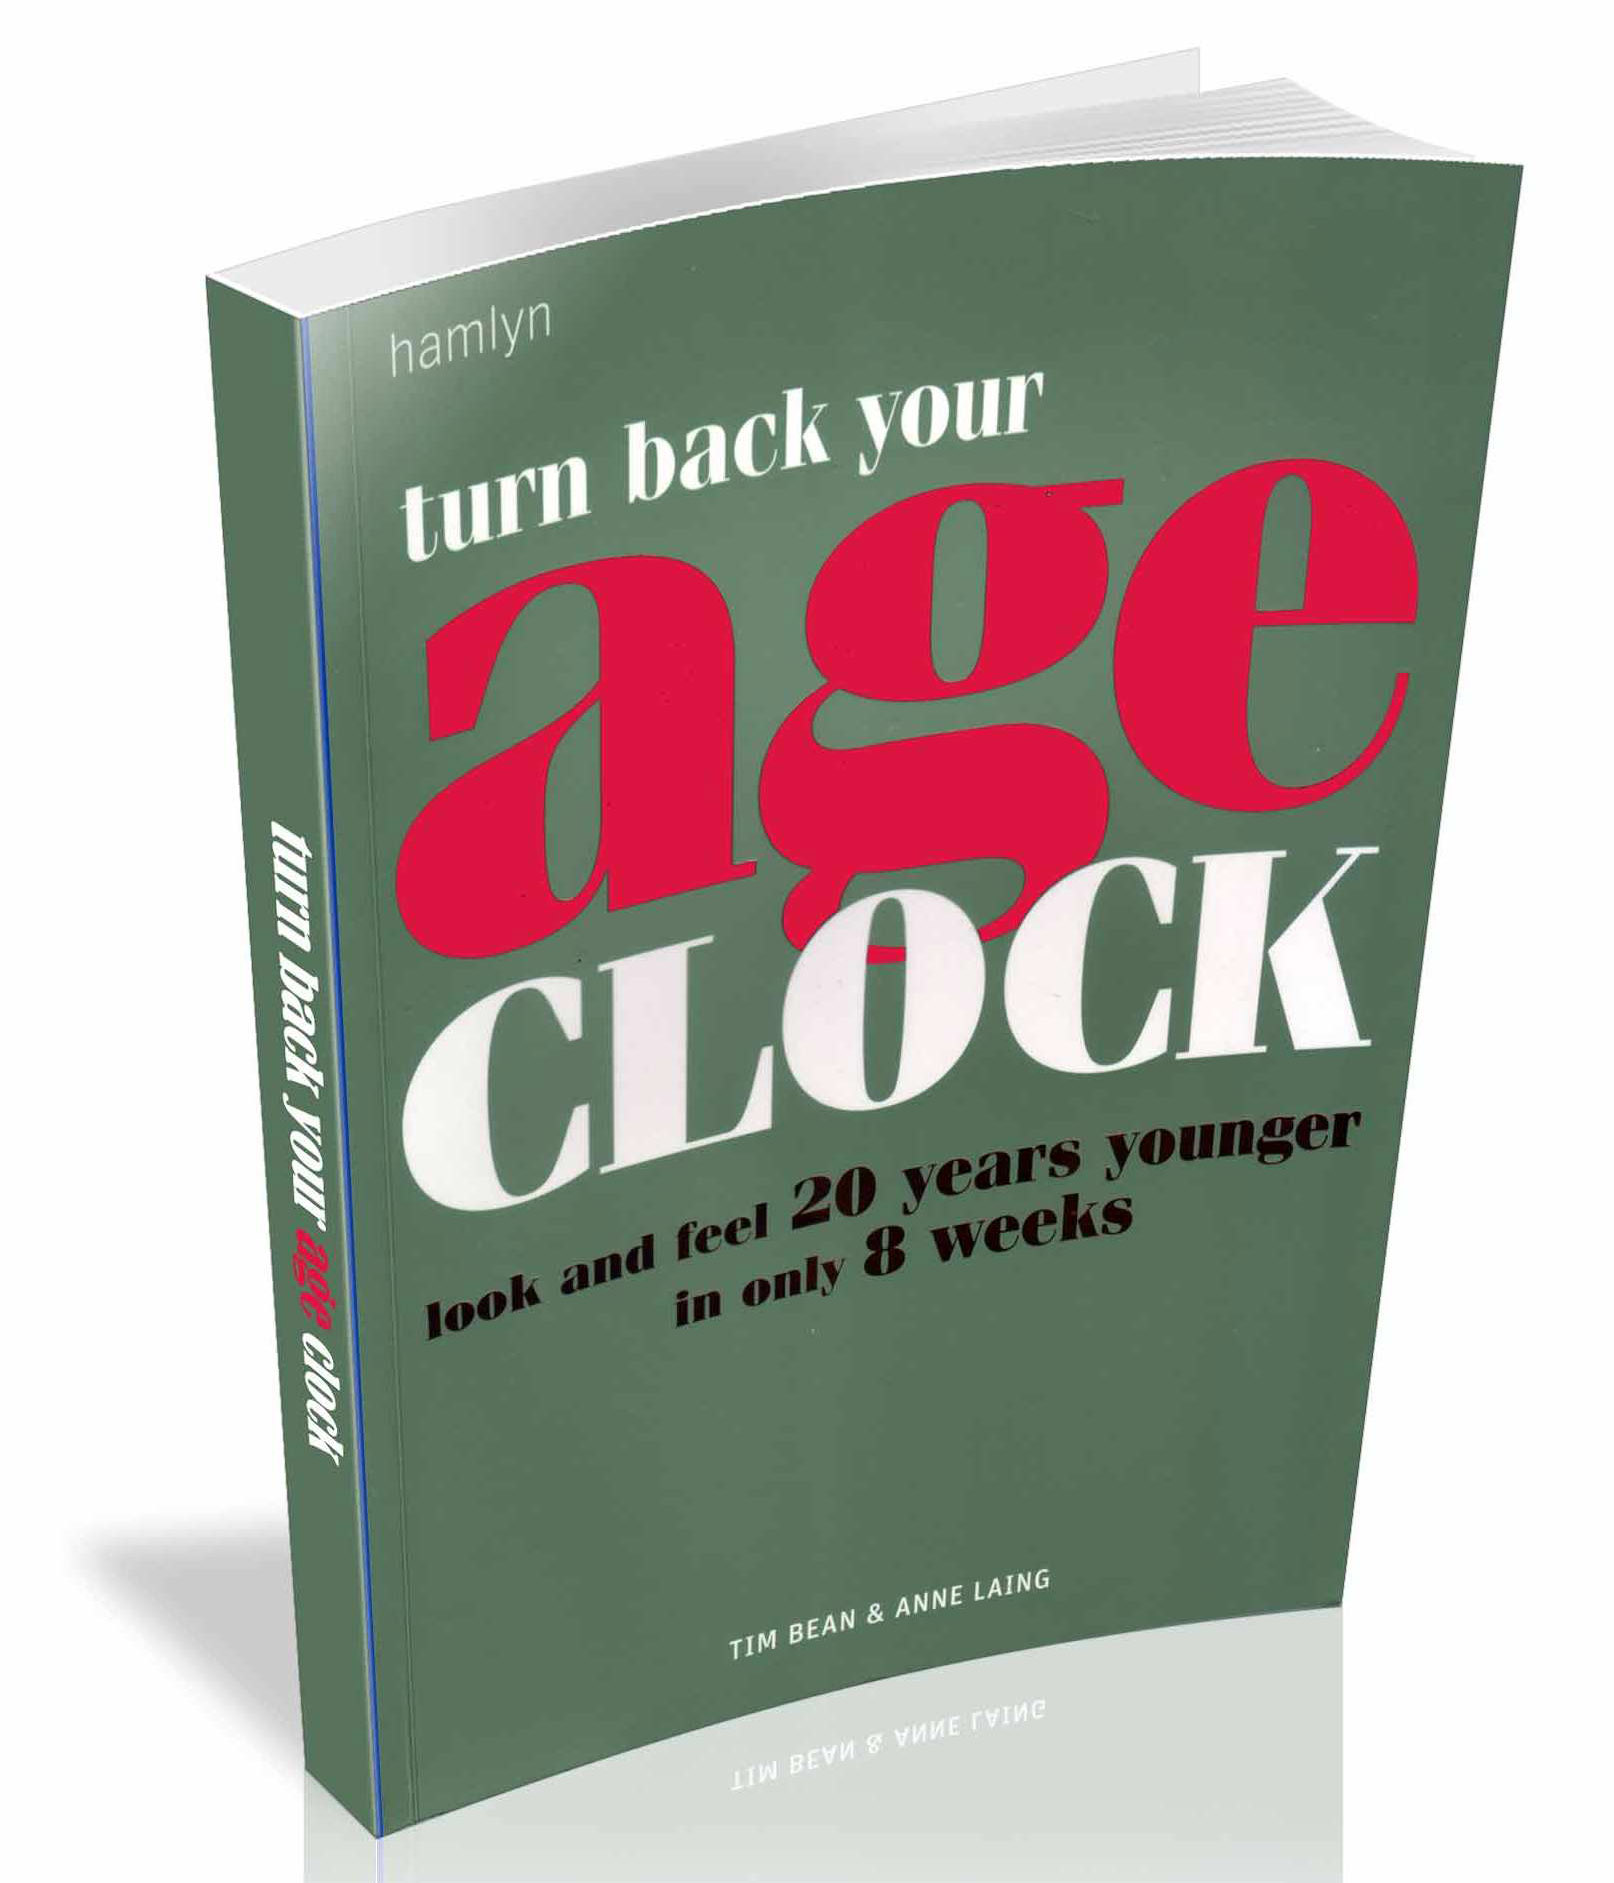 Turn Back Your Age Clock